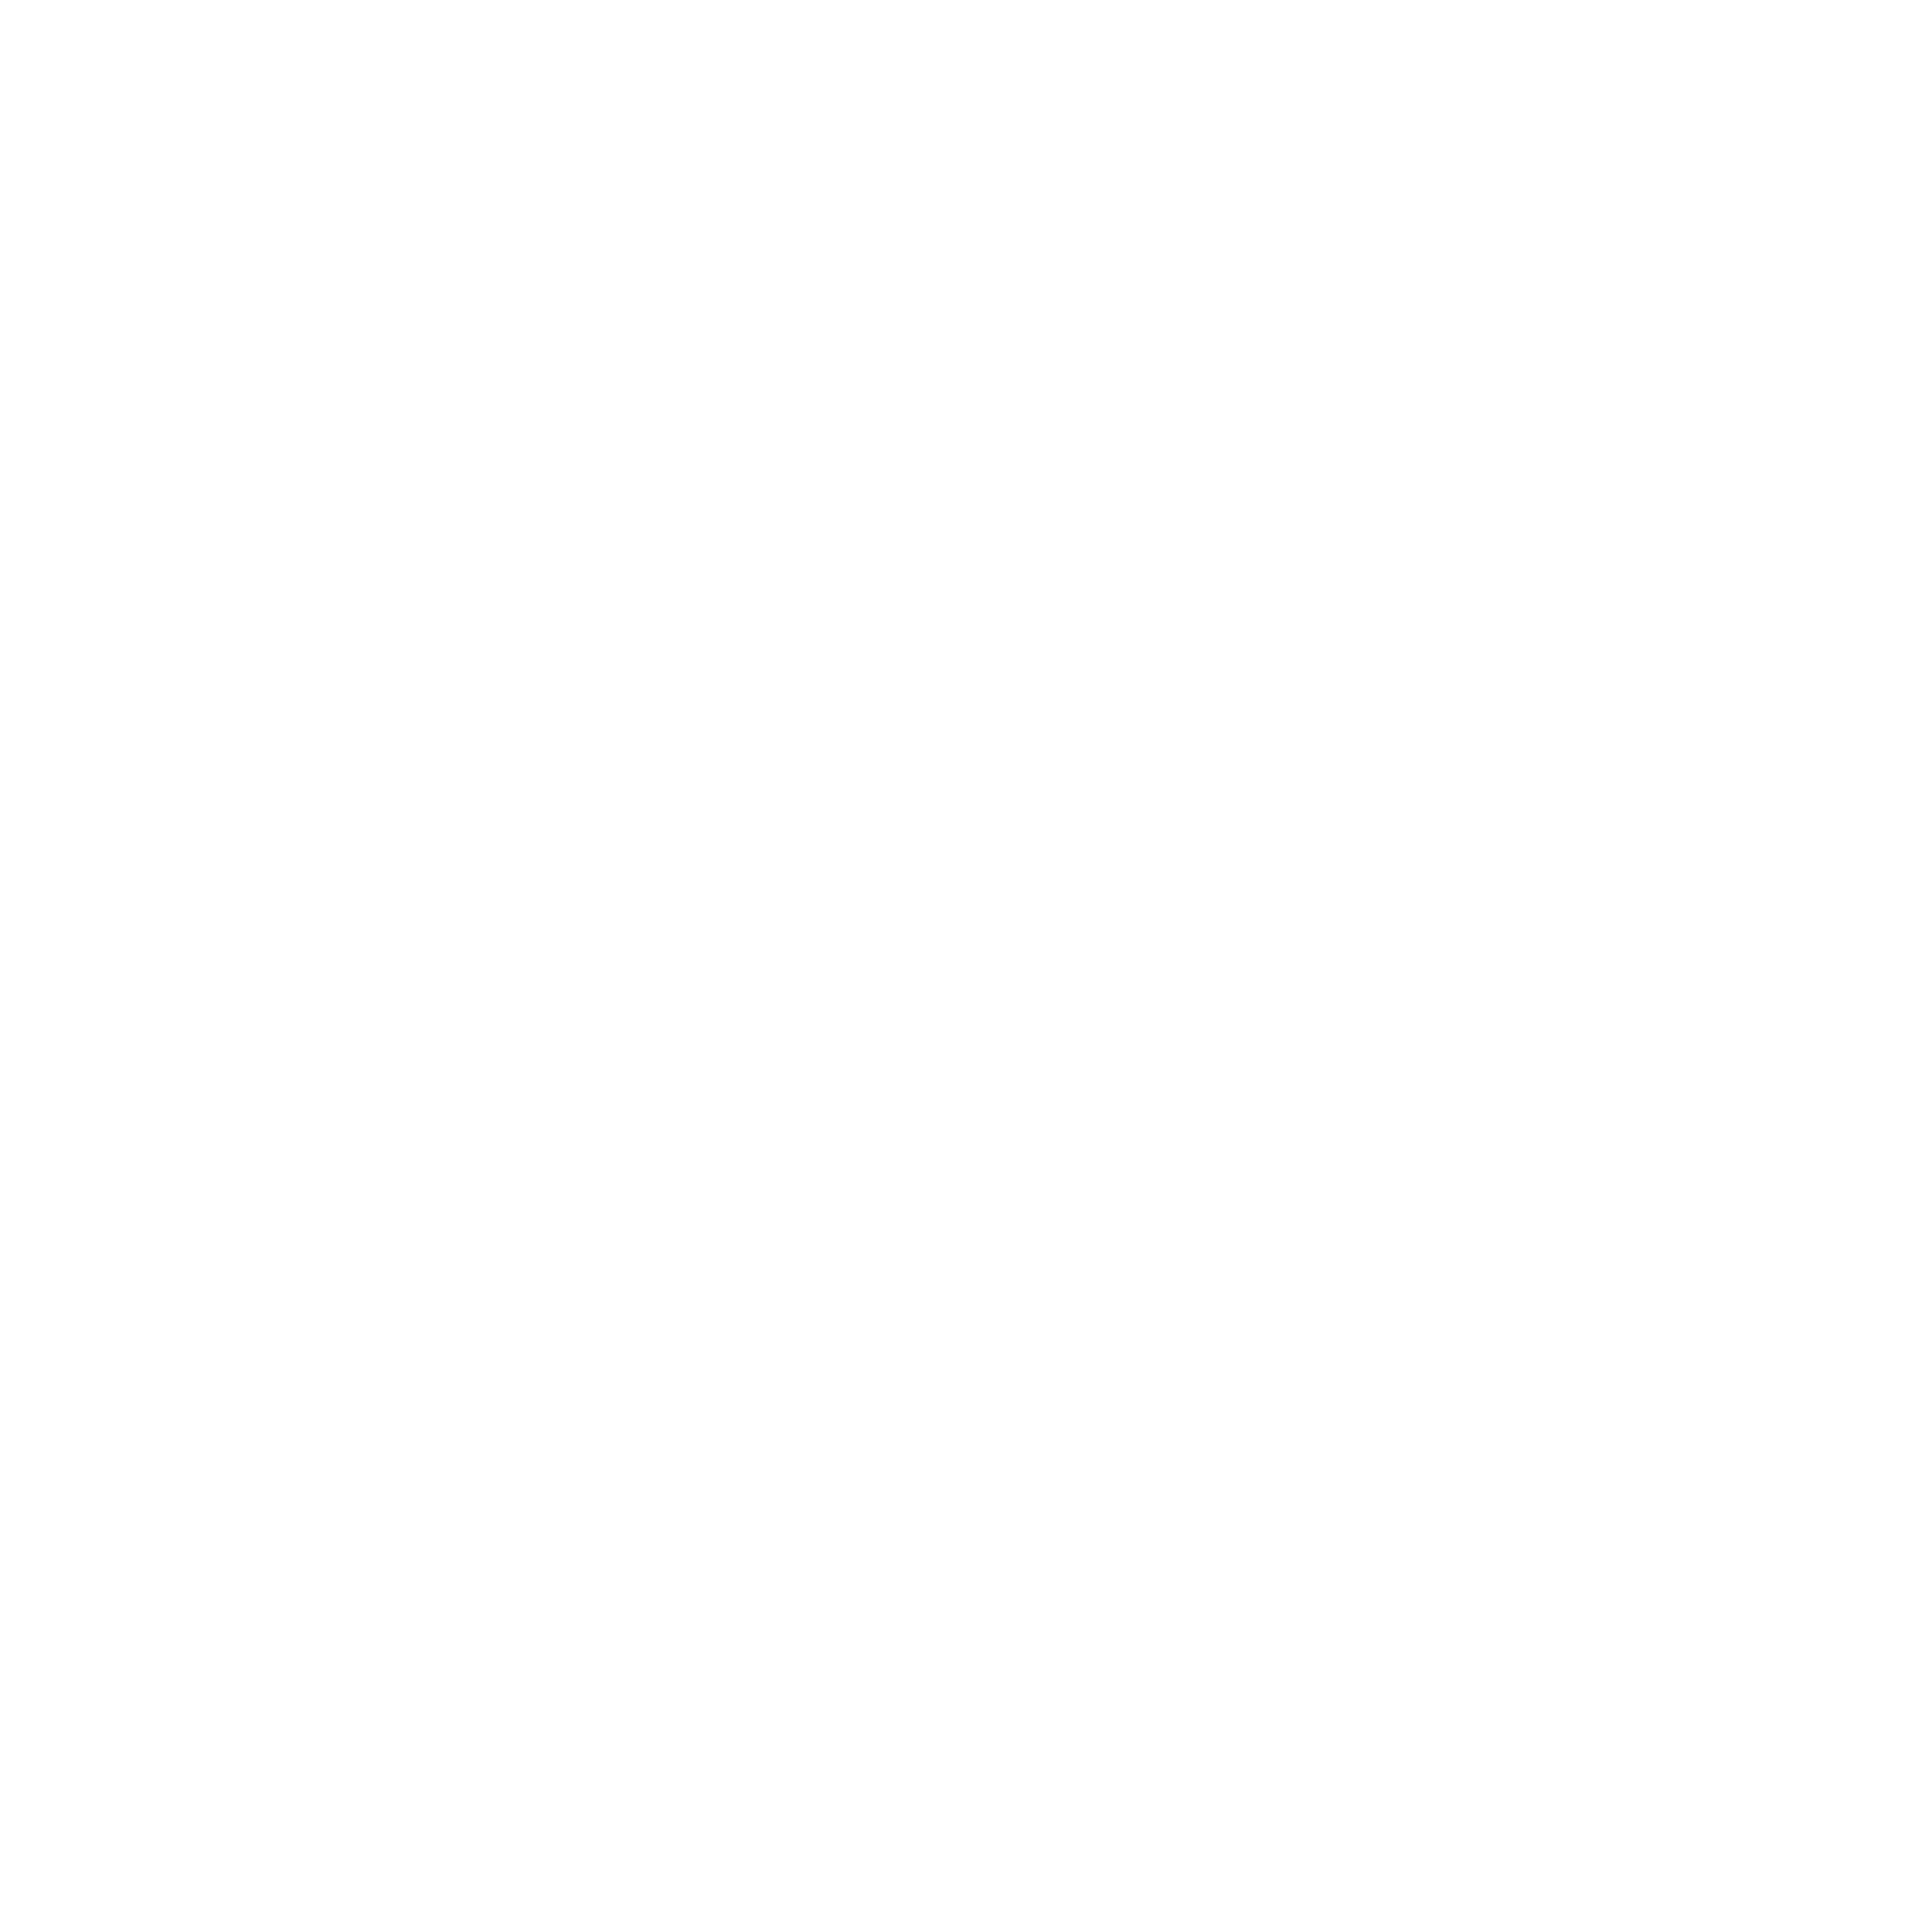 Woodford_Approved_Badge_White.png